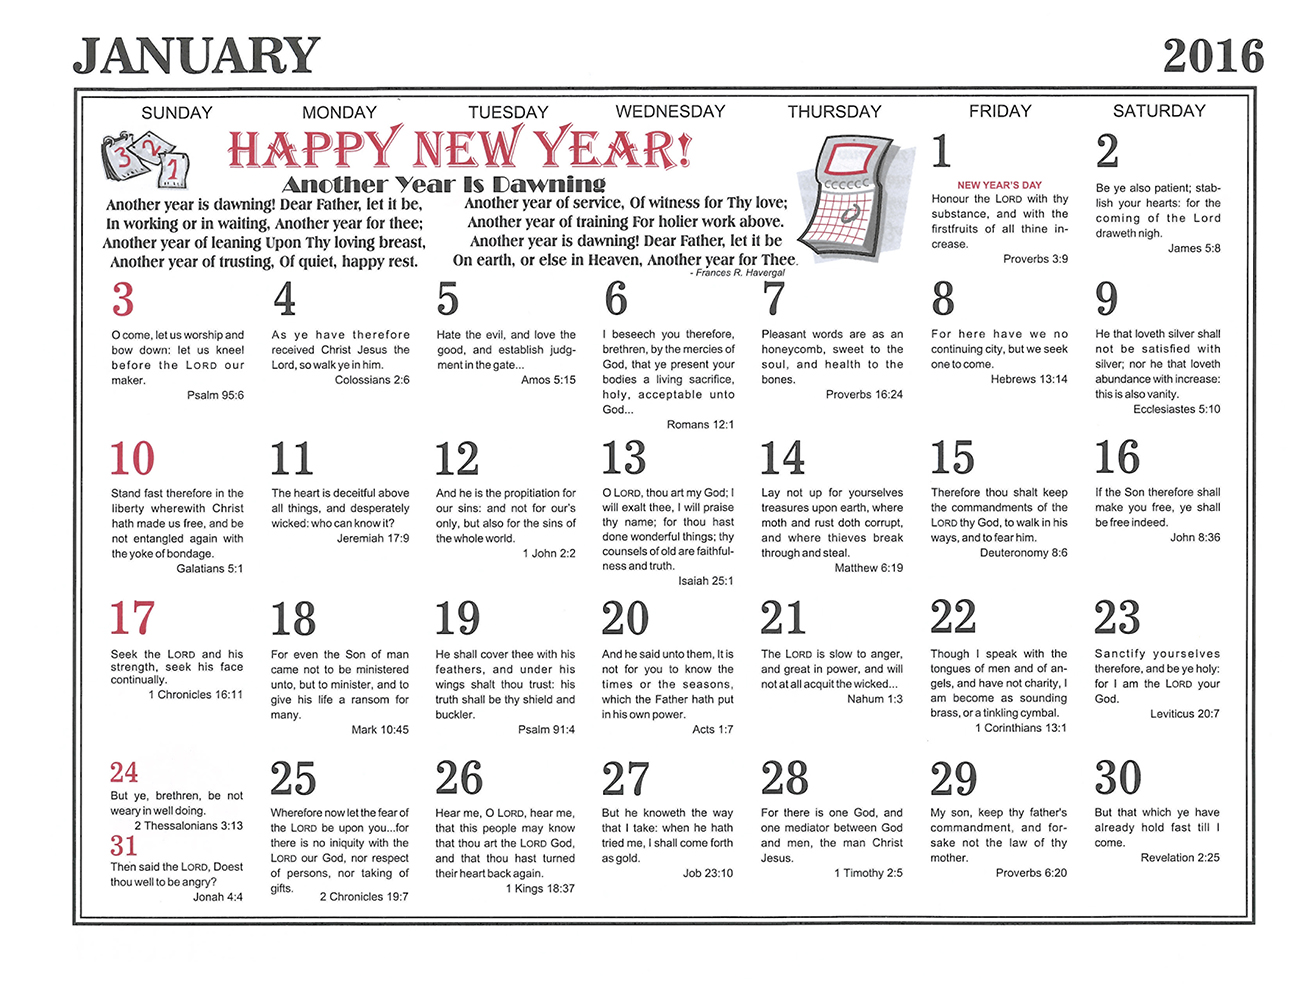 January: 2016 The Peoples Gospel Hour Calendar